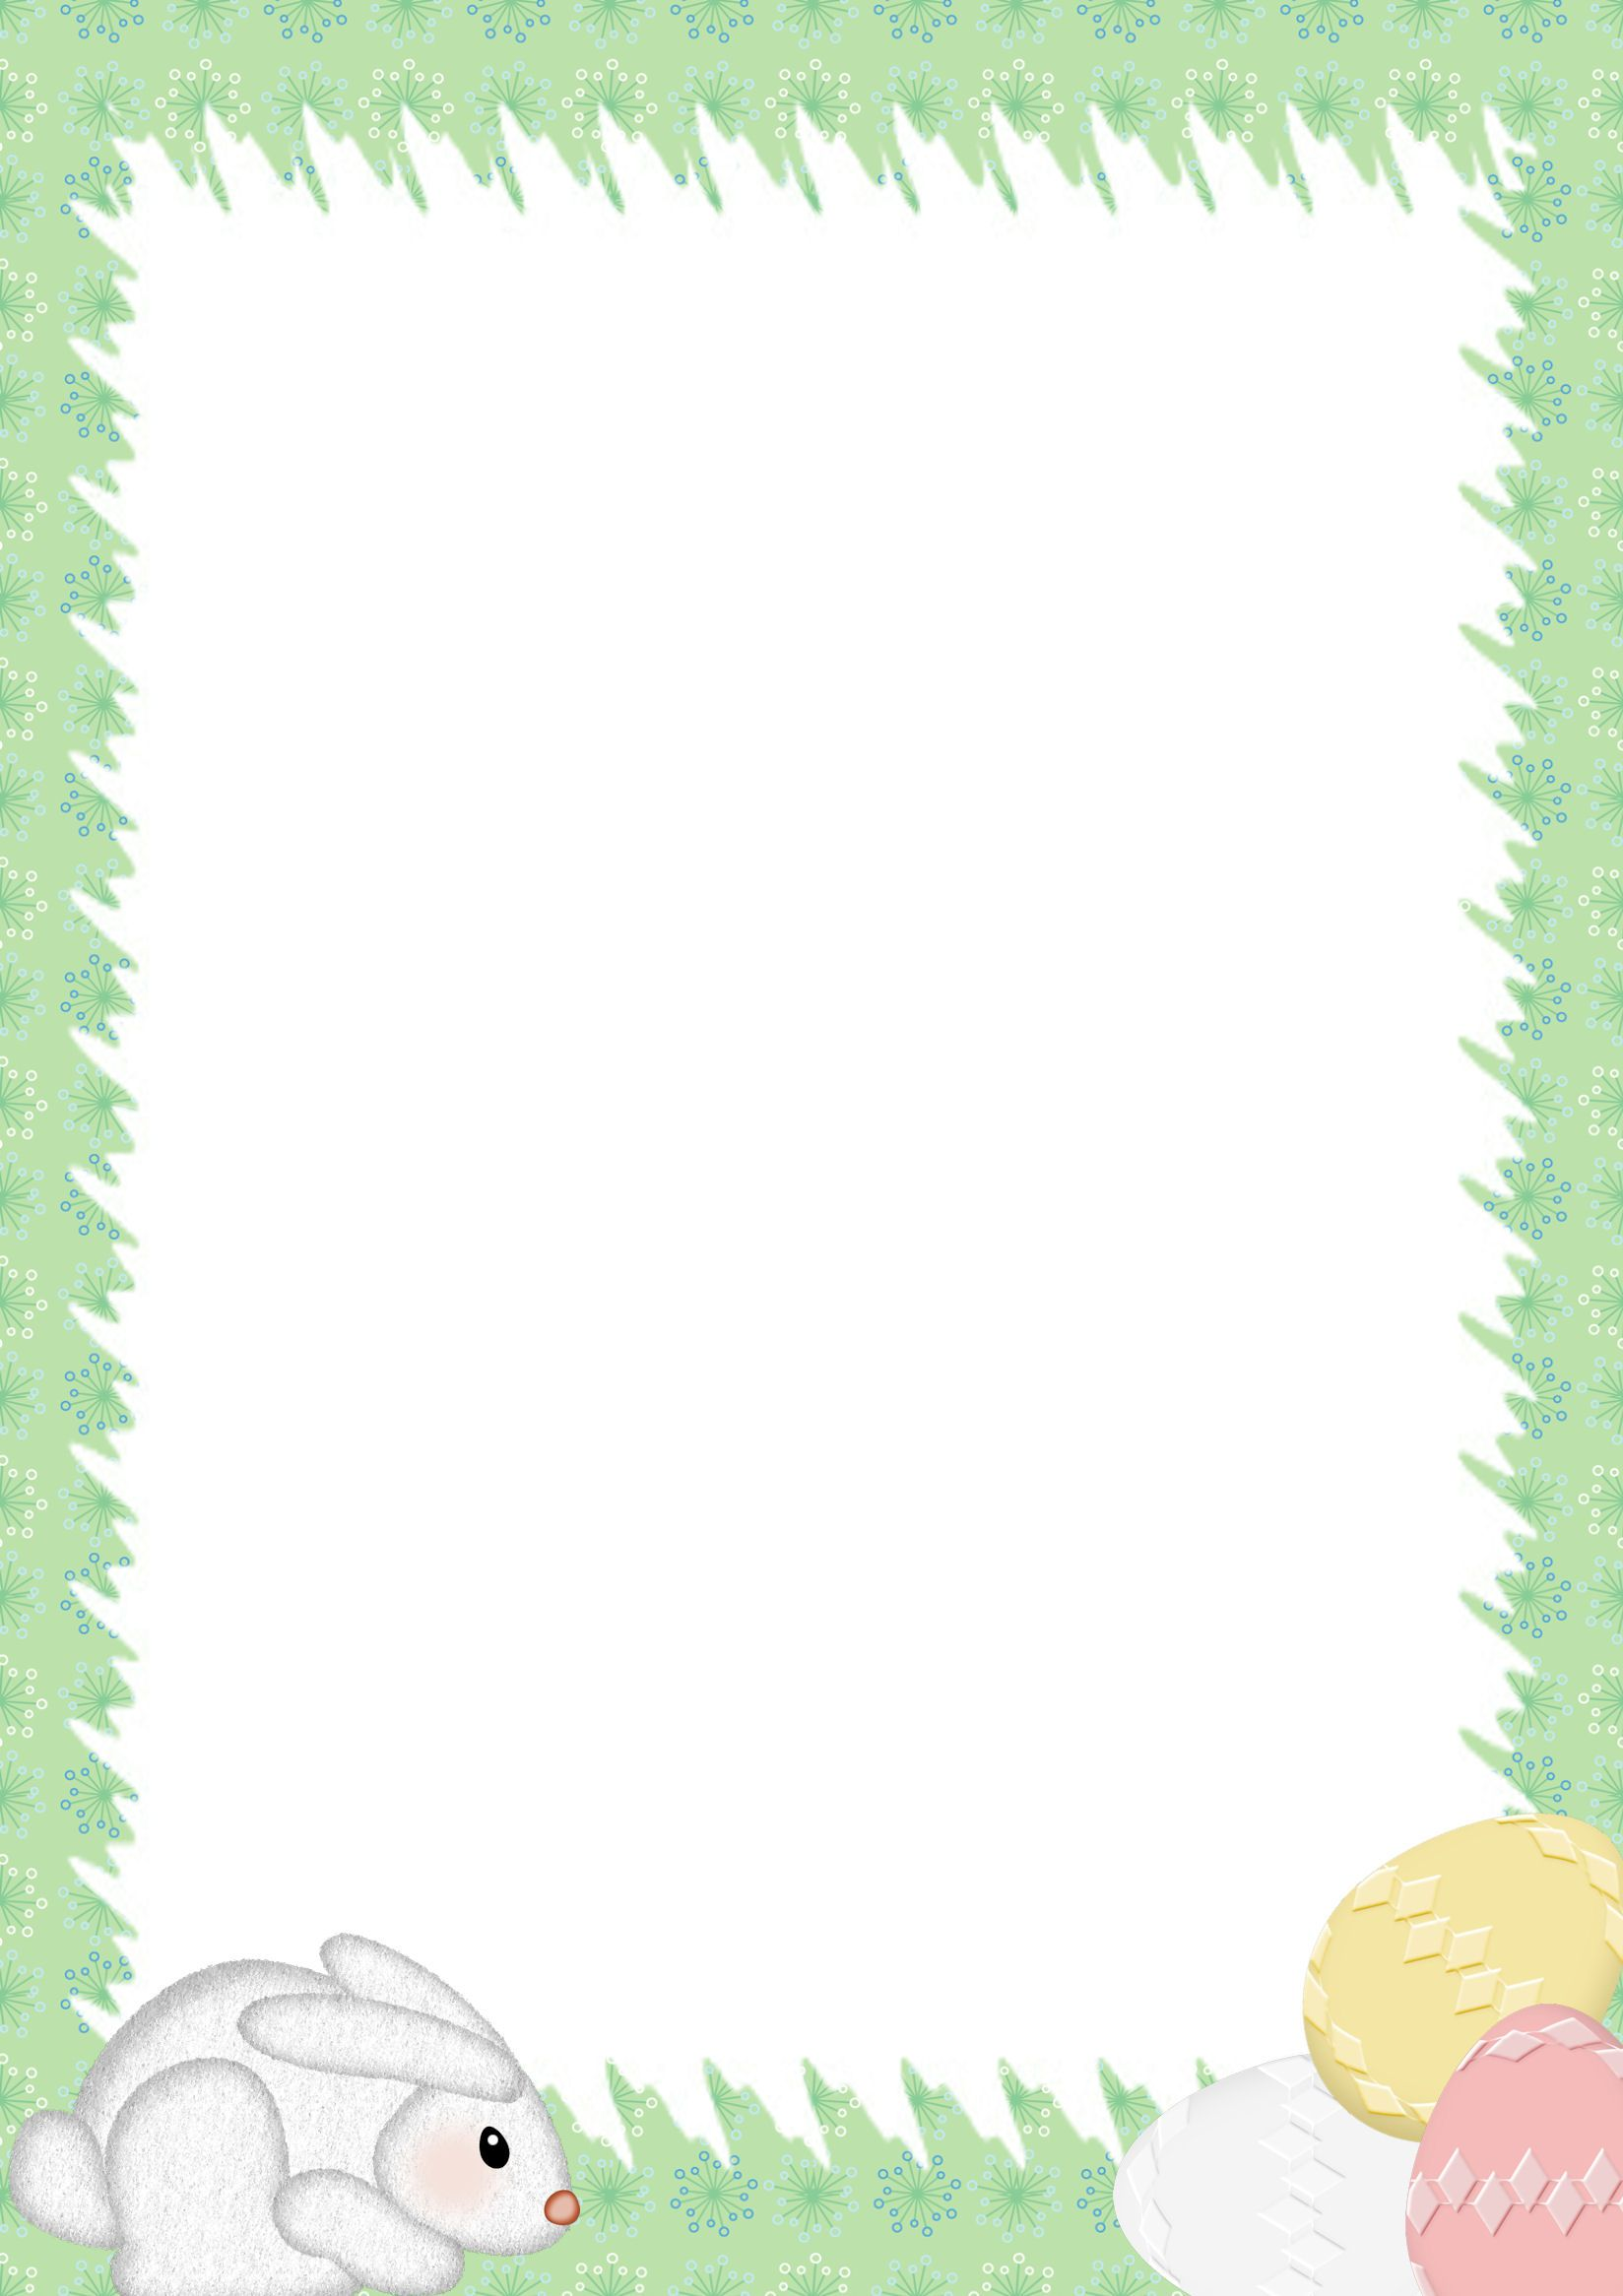 Easter Stationery | Microsoft Word Border Templates  Free Microsoft Word Border Templates